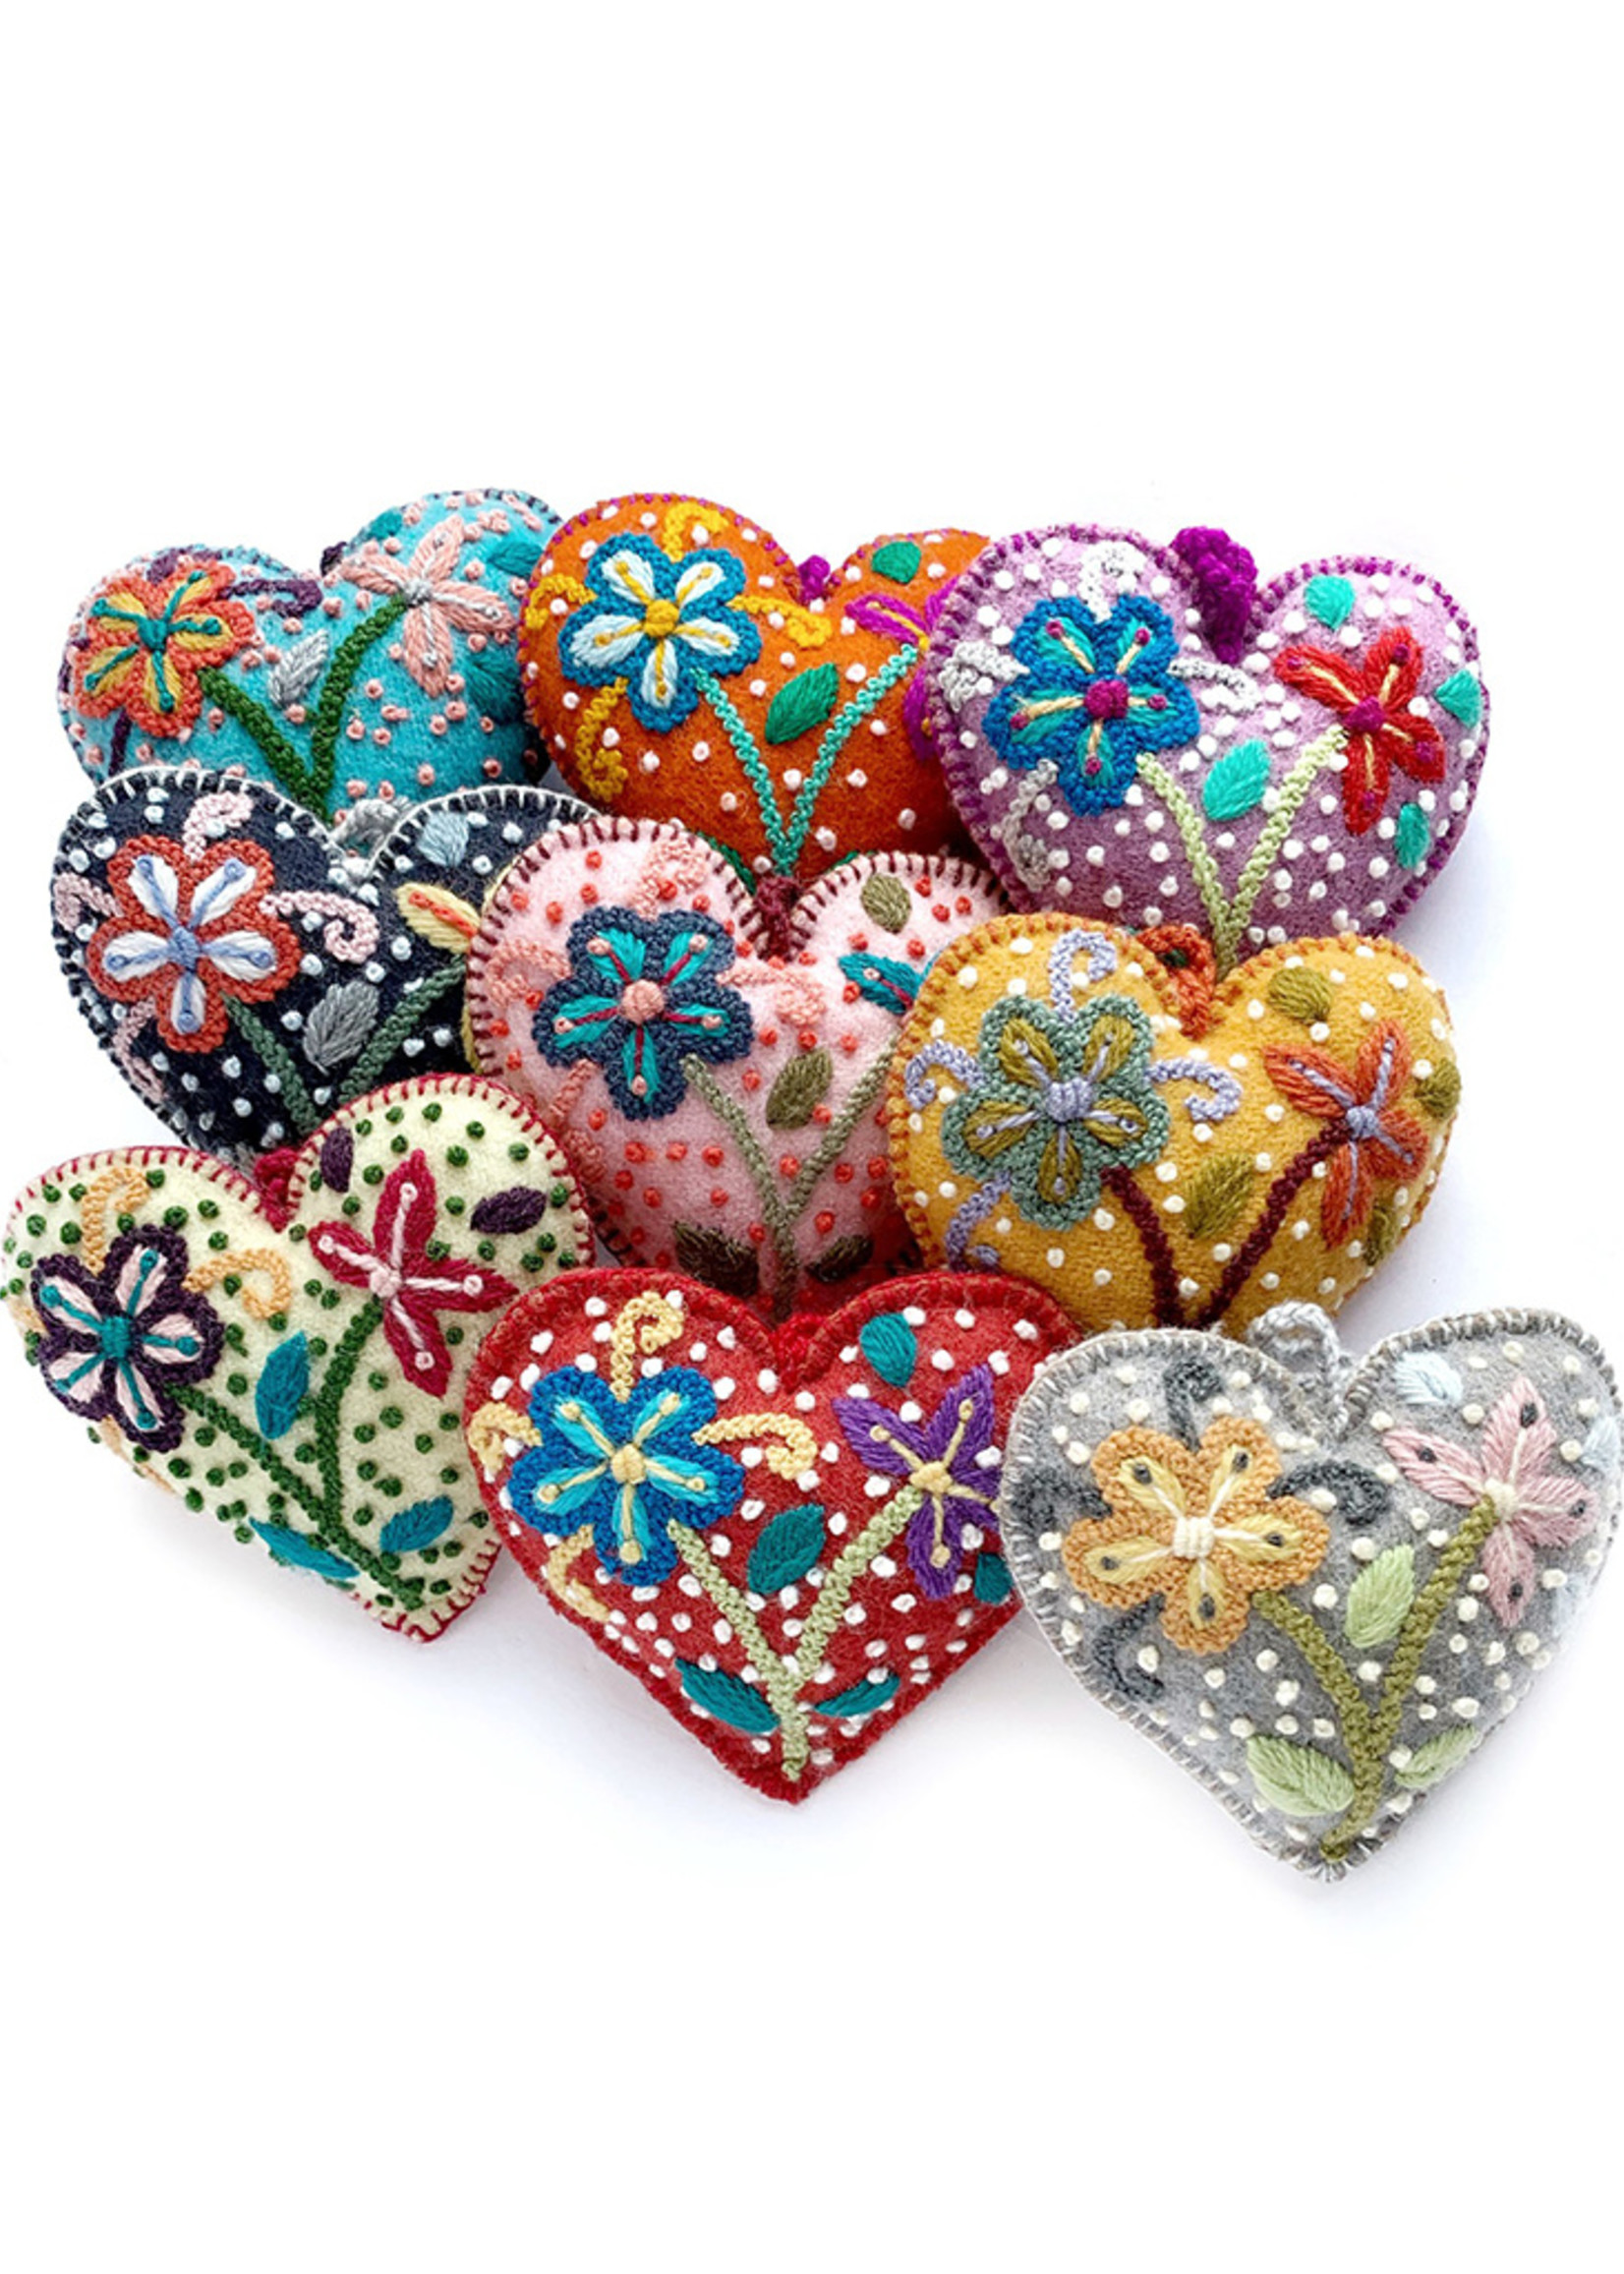 Colorful Flower Heart Ornament